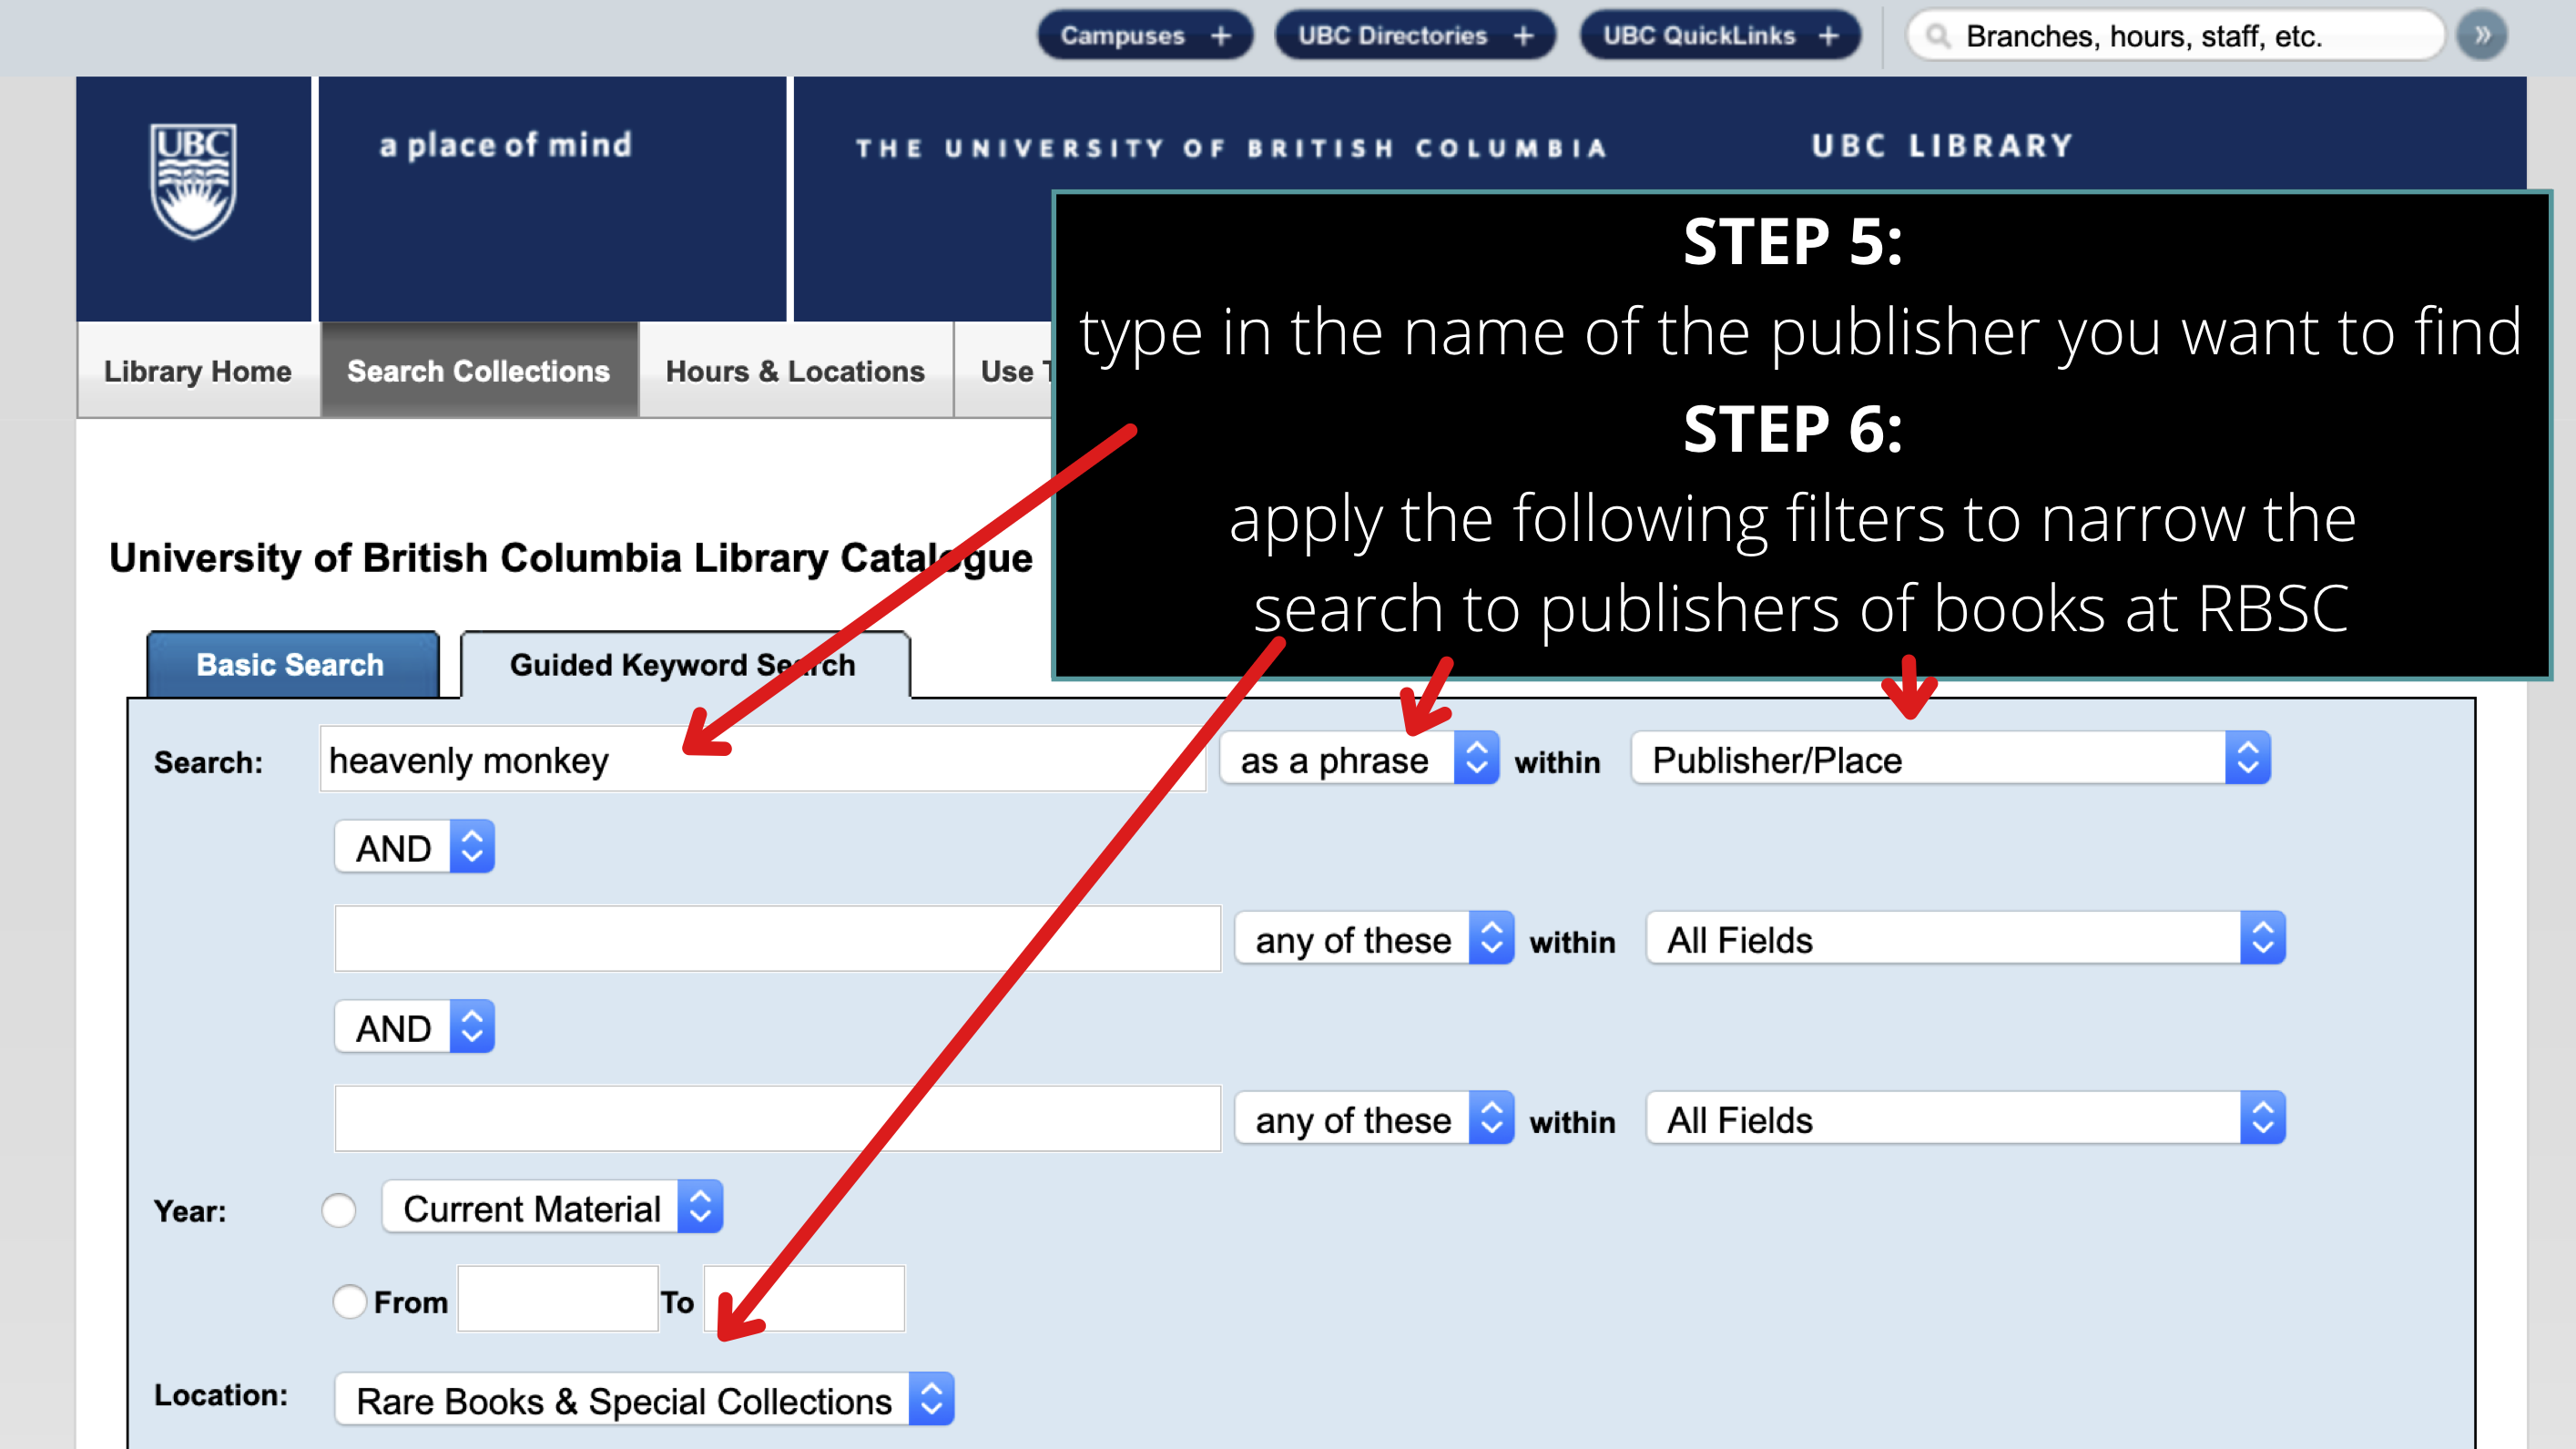 screenshot of UBC Library Guided Keyword Search page